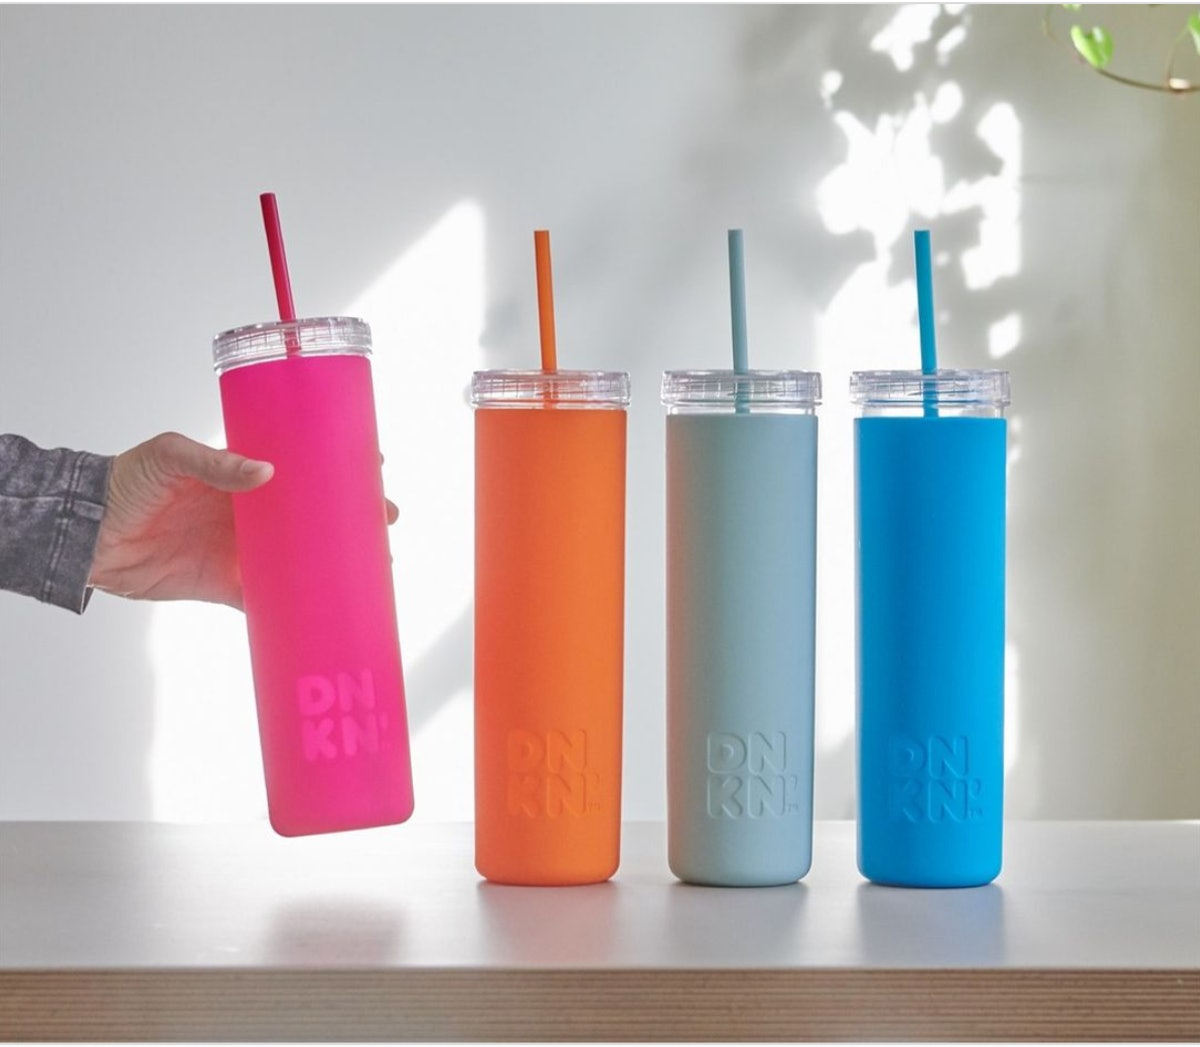 Dunkin' launched some new DNKN' silicone sippers.